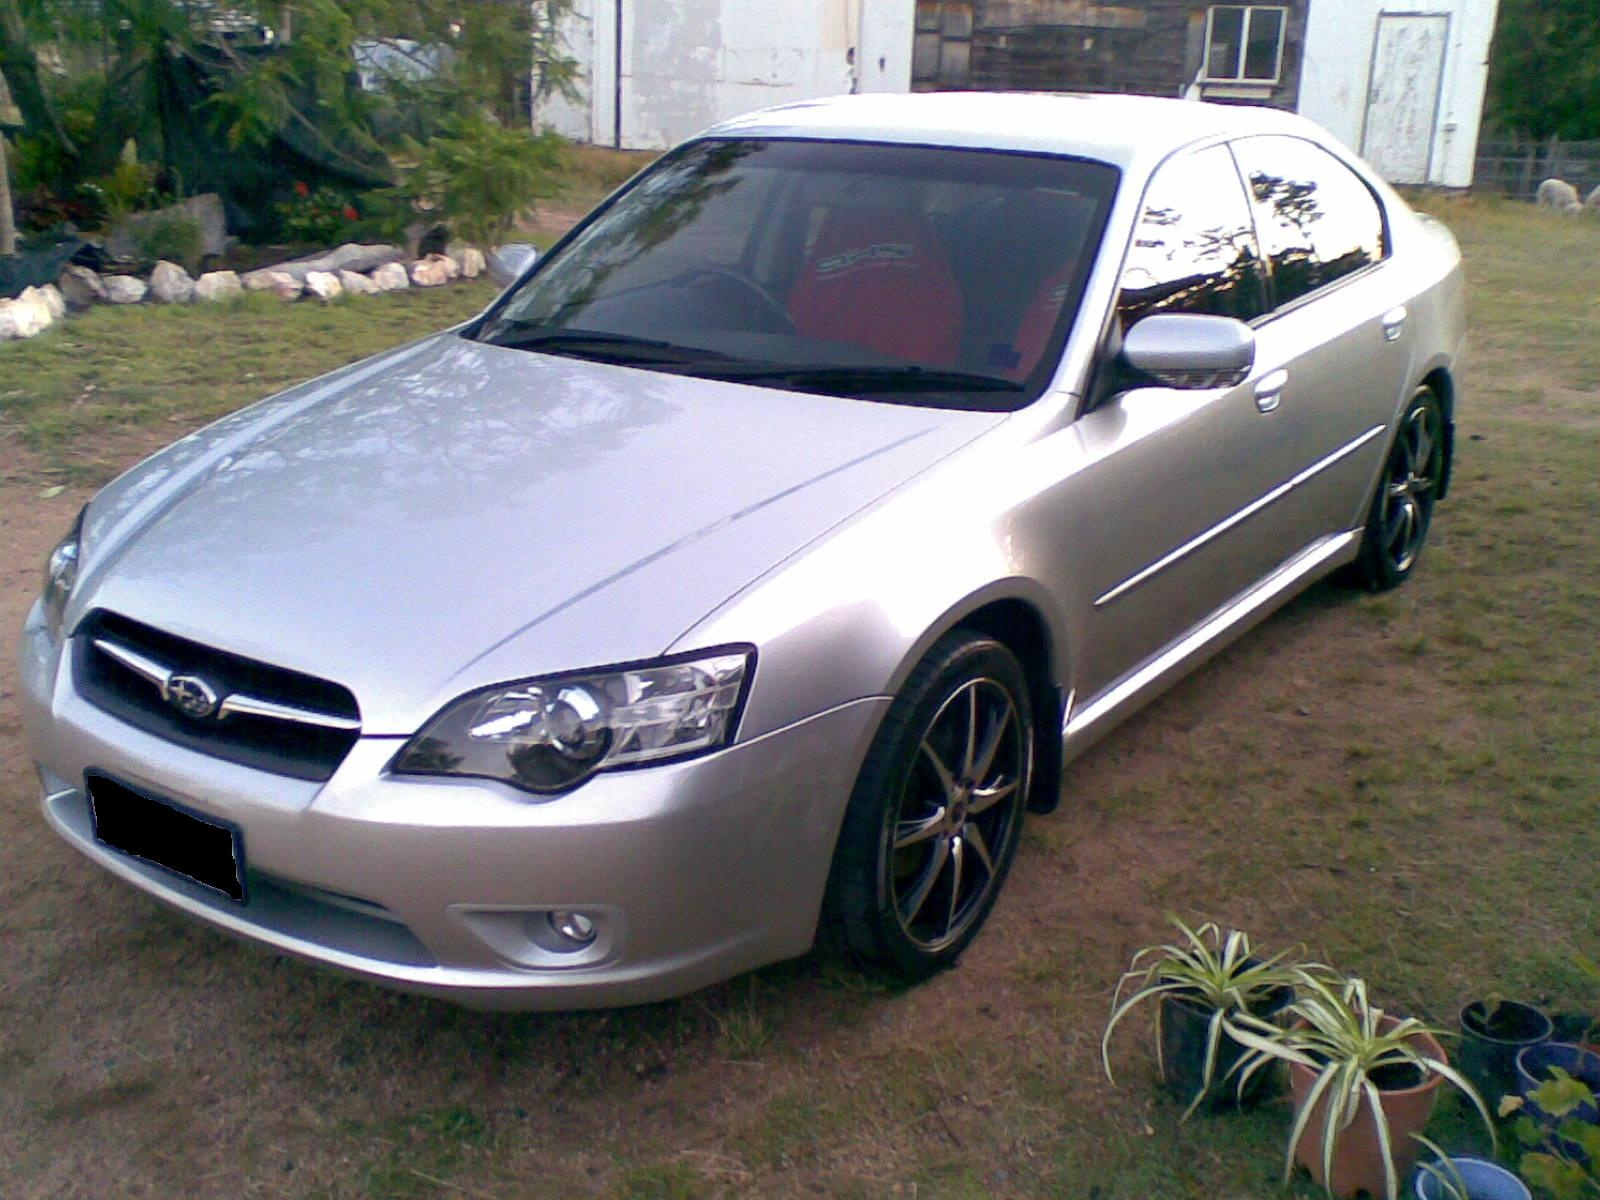 Picture of 2004 subaru legacy exterior gallery_worthy